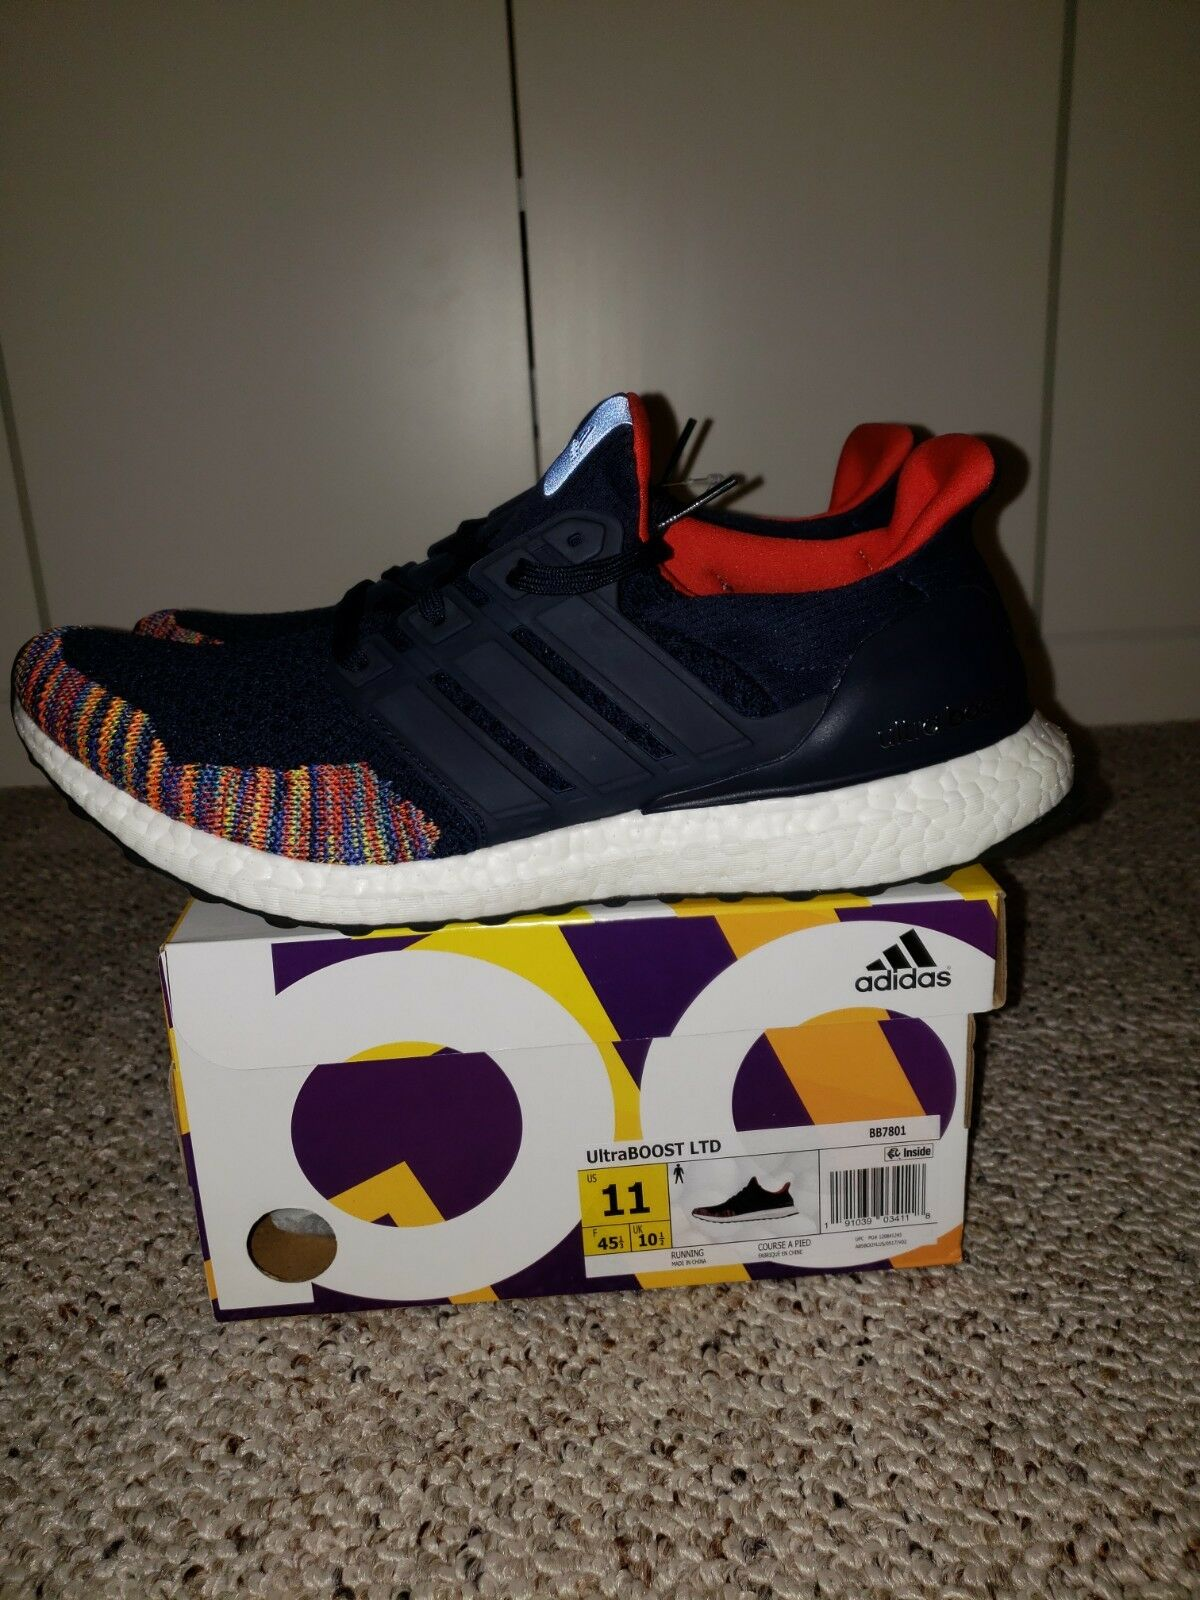 9bd8487dc Adidas Ultraboost 1.0  Multi-color Toe  Navy Mens Size 11 Ltd  nhqzmf640-Athletic Shoes